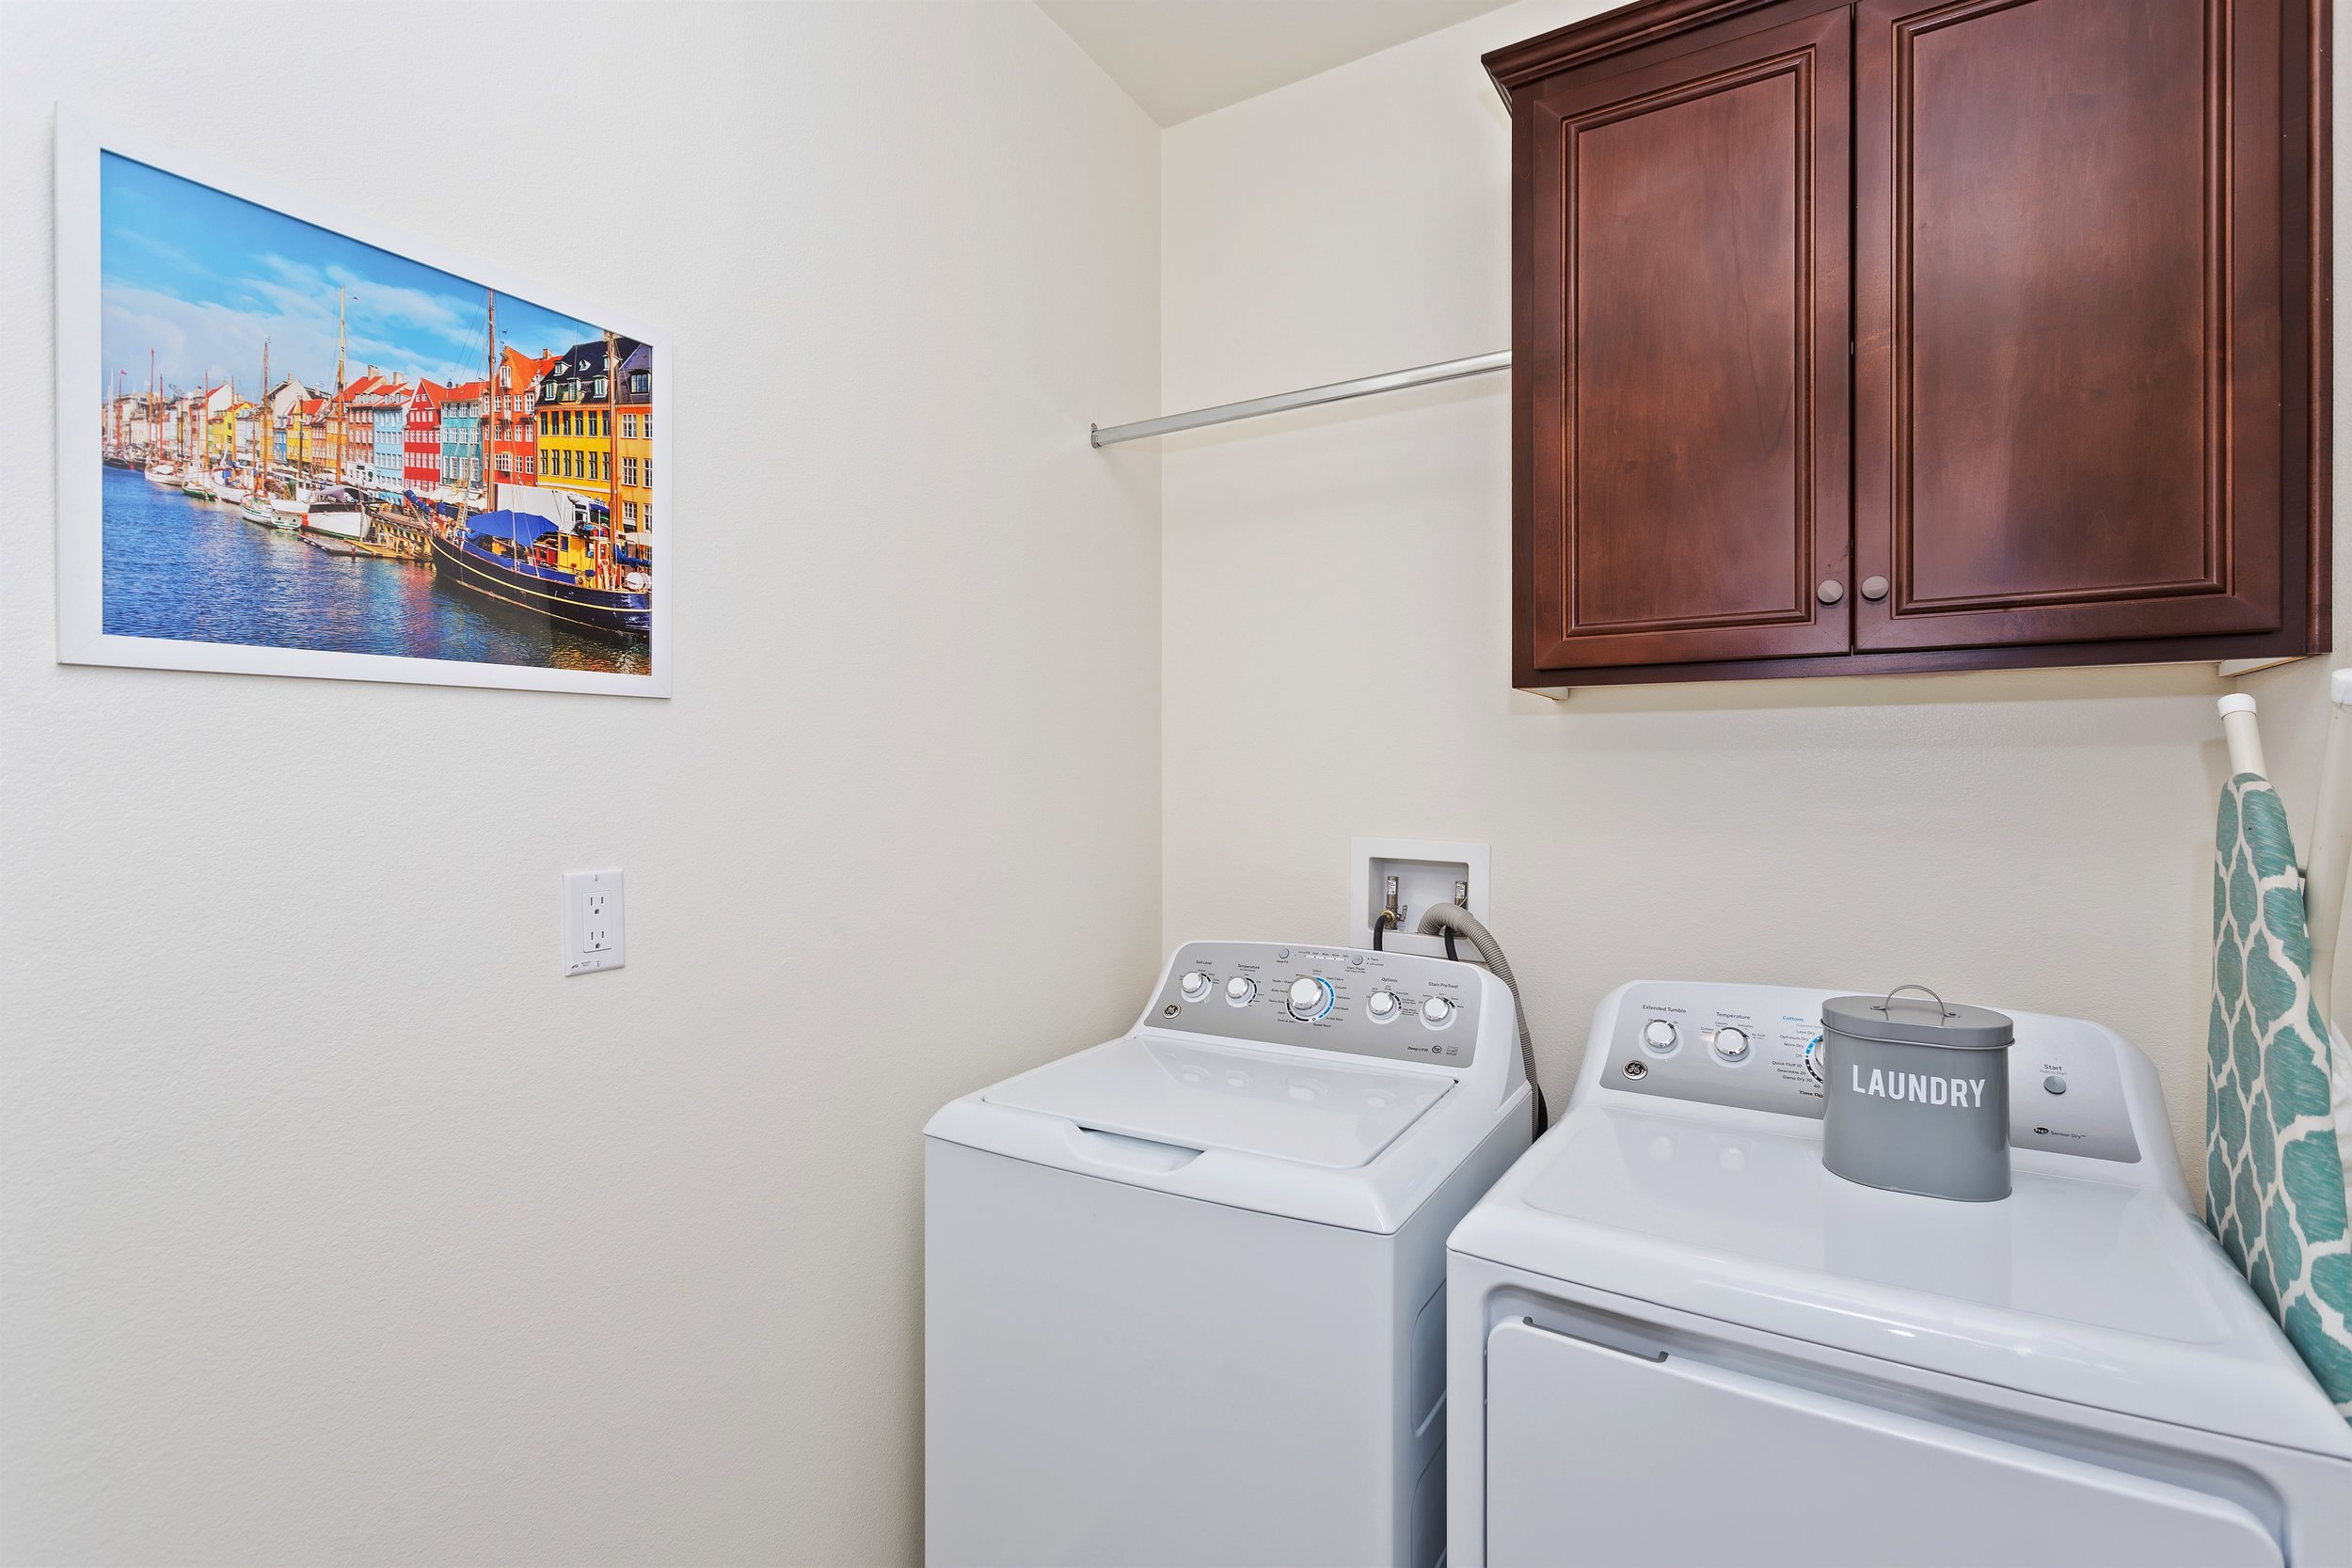 014_2nd Floor Laundry Room.jpg